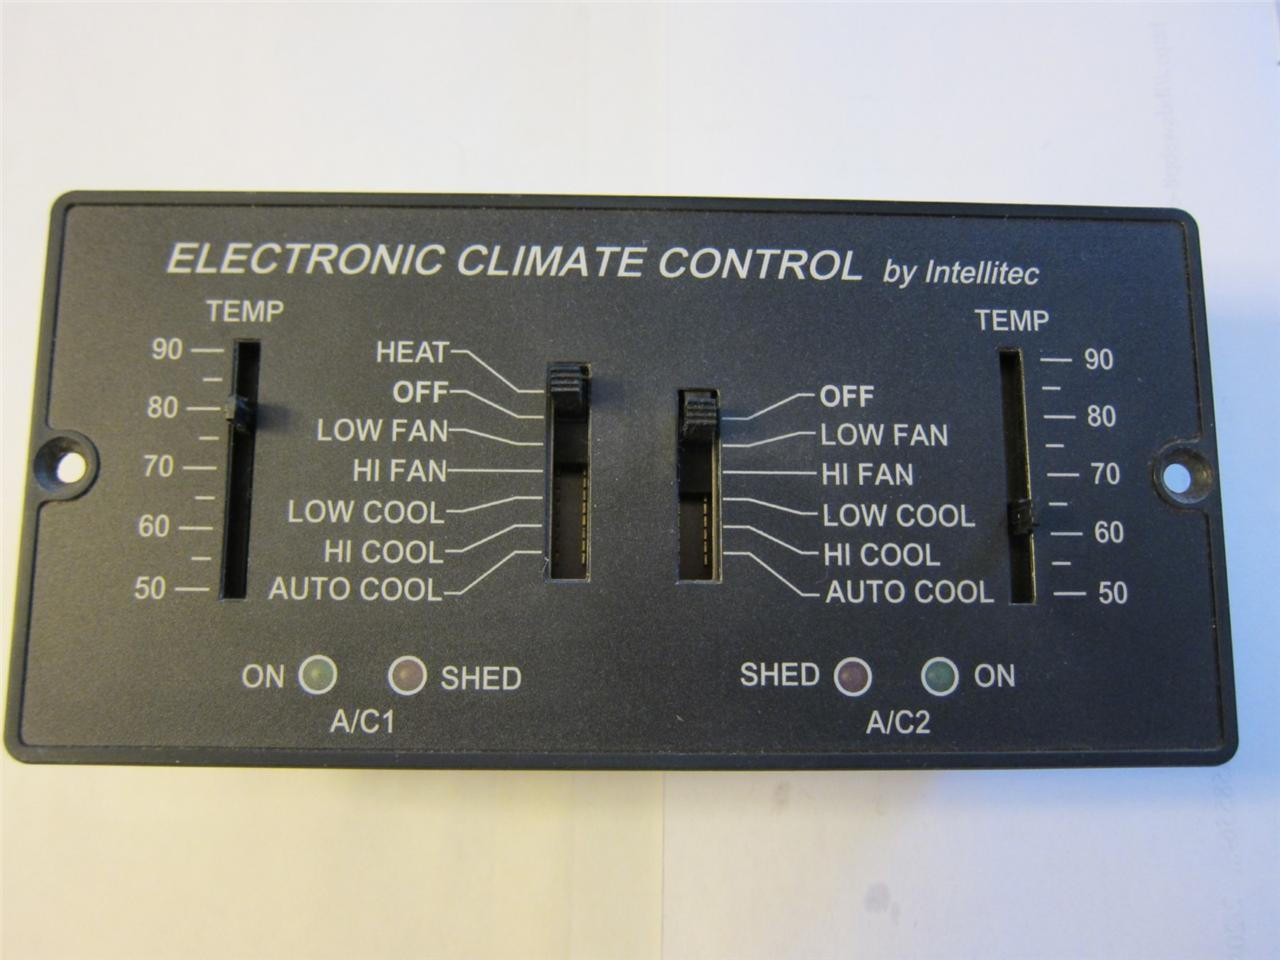 31d4c7e7-4f0b-4c0c-9cb9-b2eaace75080_itelletic thermostt.jpg